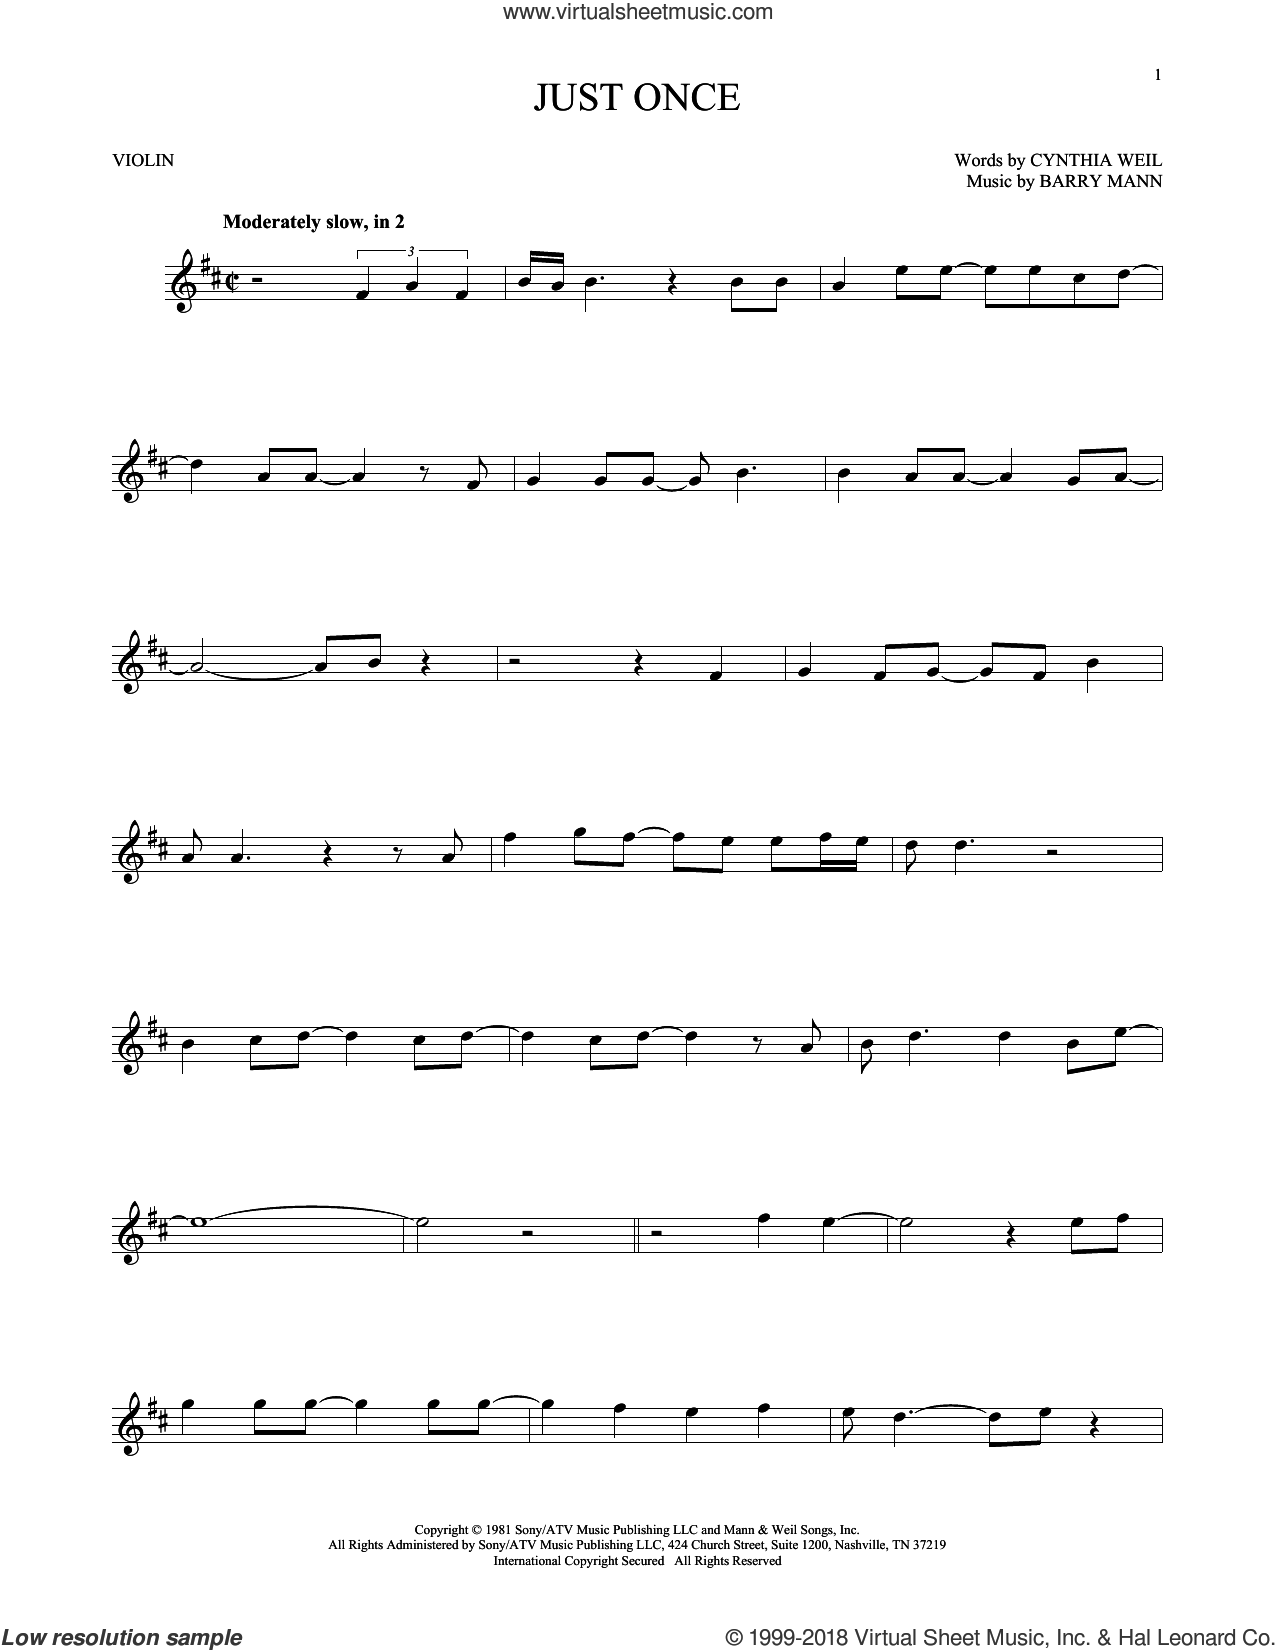 Just Once sheet music for violin solo by Quincy Jones featuring James Ingram, Barry Mann and Cynthia Weil, intermediate skill level